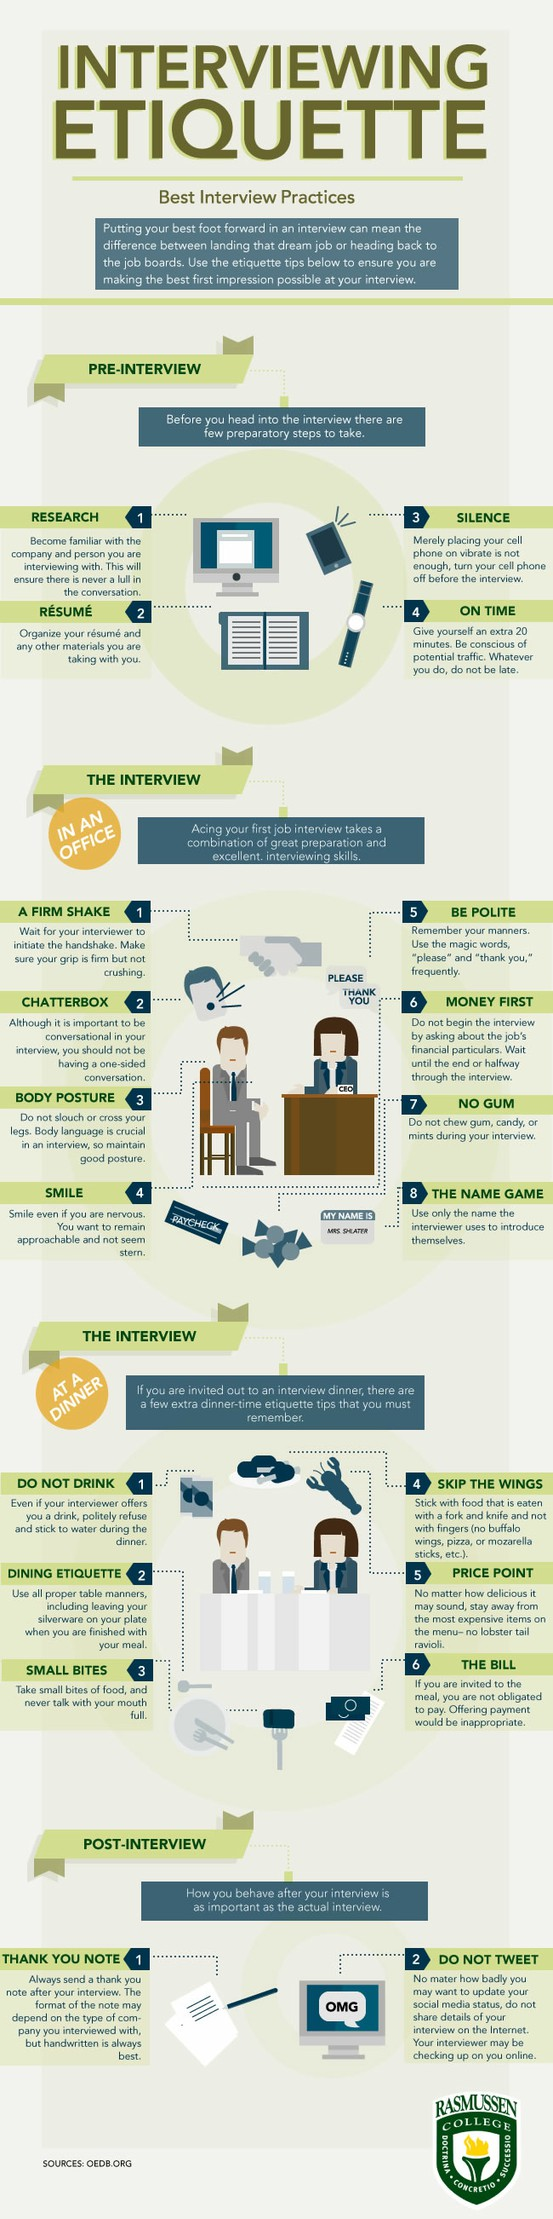 Job Interview Best Practices